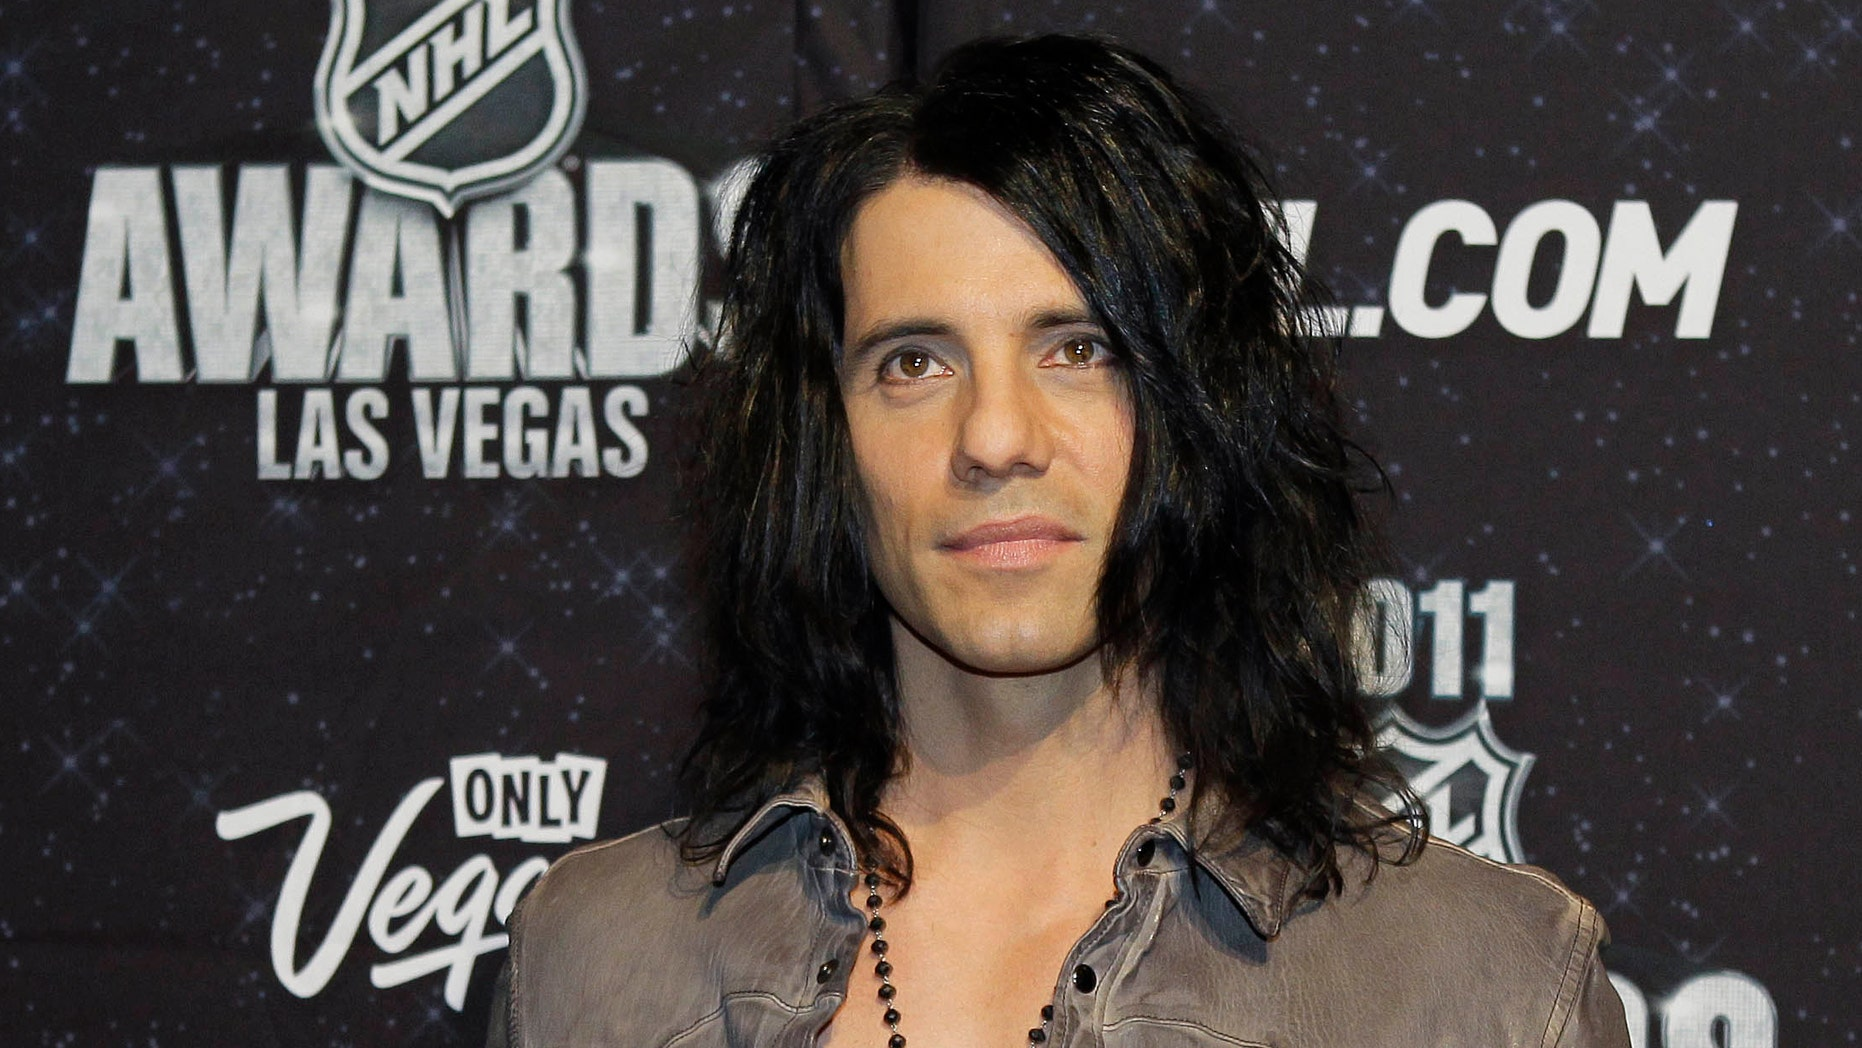 June 22, 2011. Criss Angel appears on the red carpet before the 2011 NHL Awards, in Las Vegas.